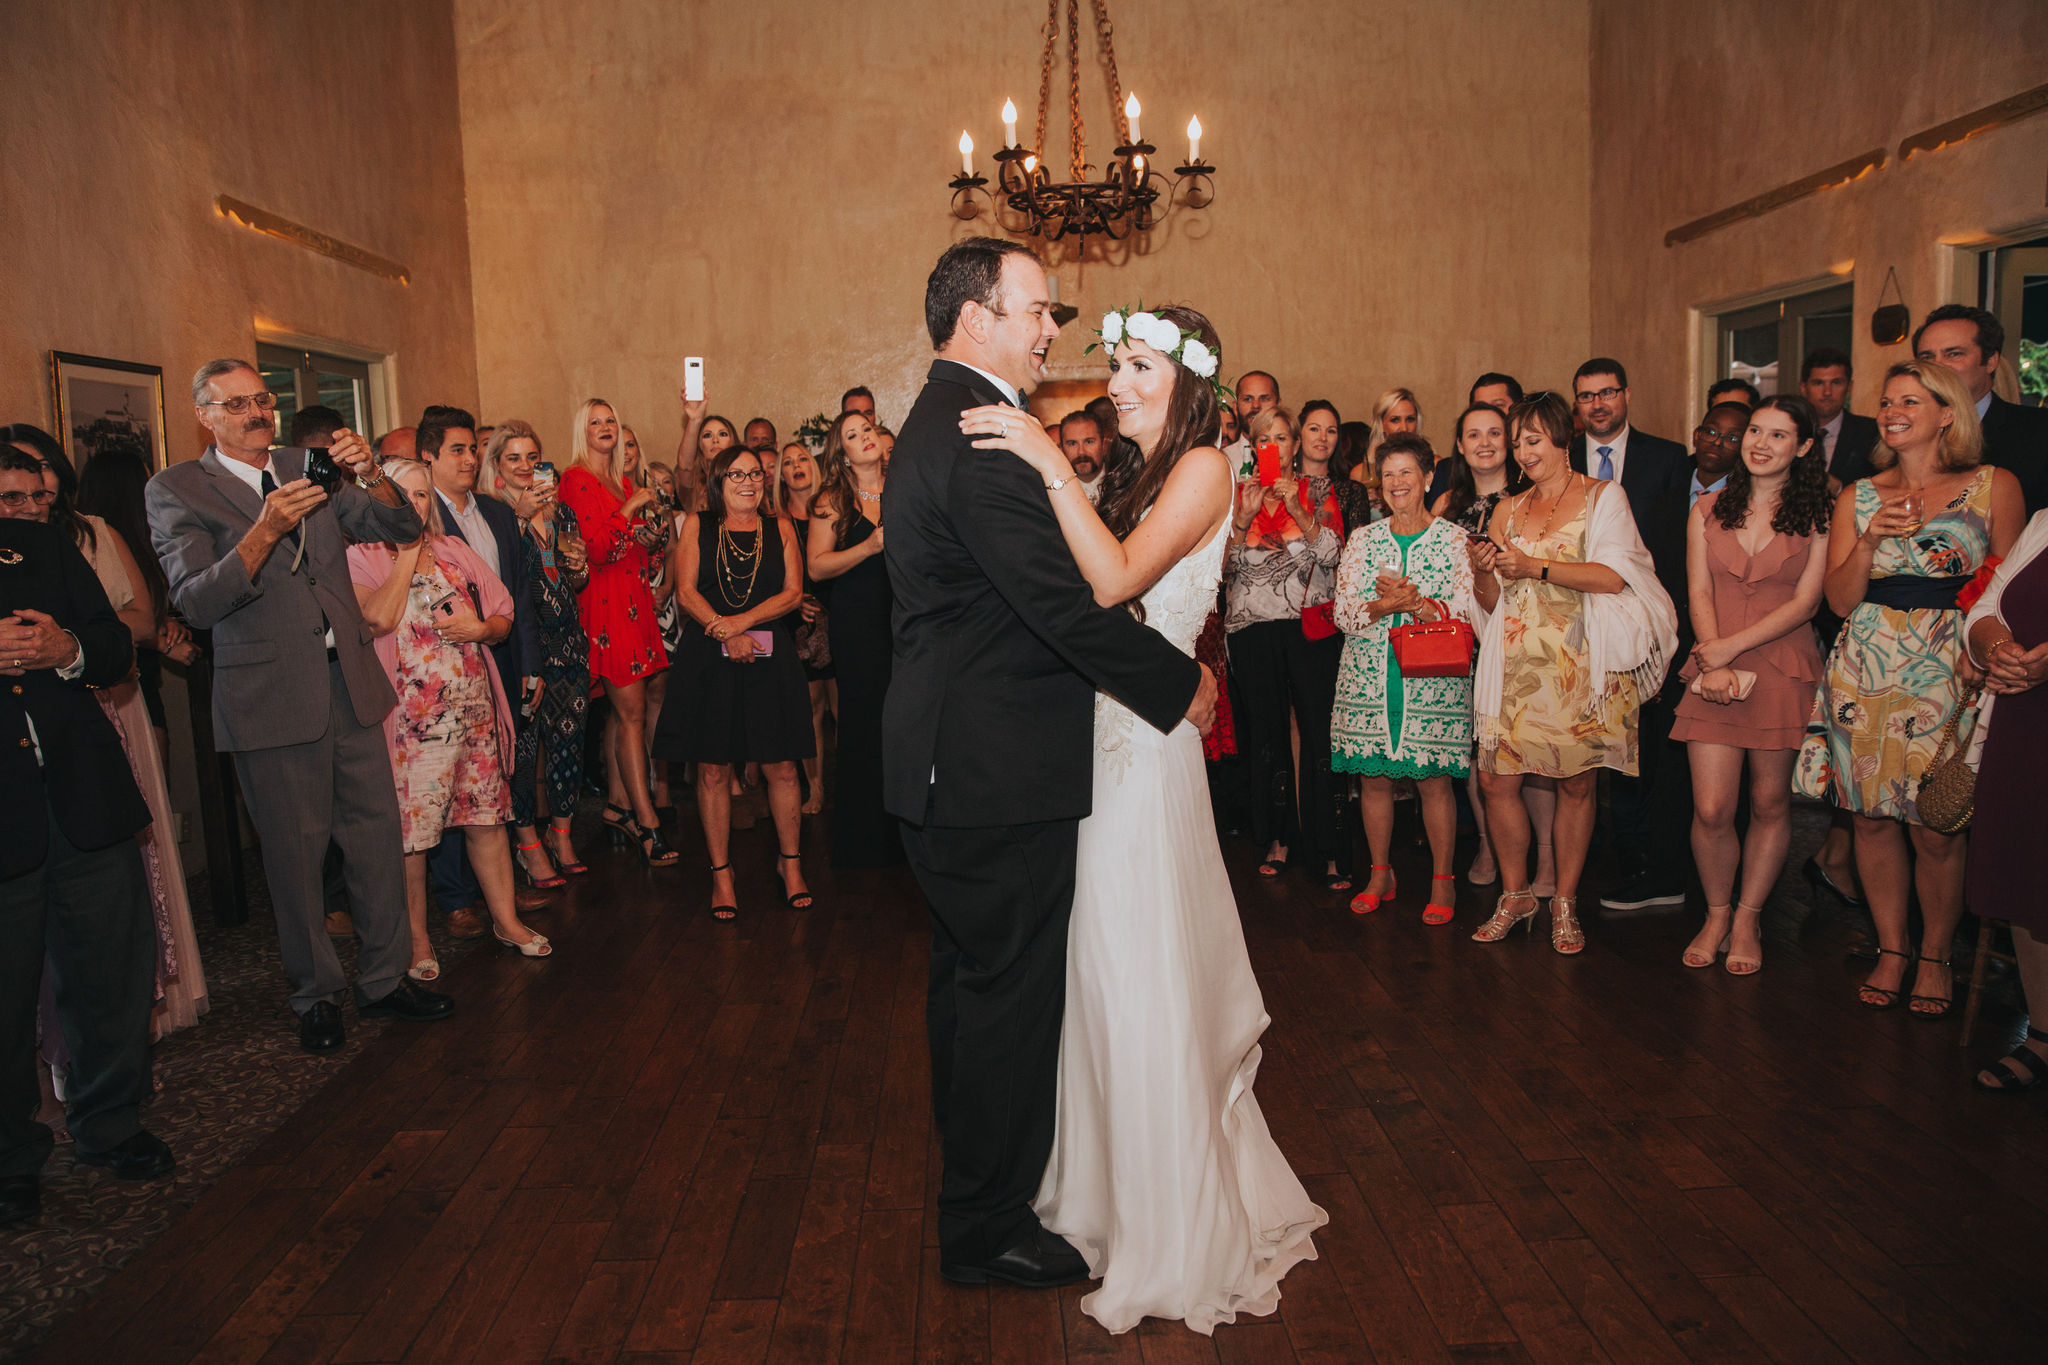 Wedding Dance | La Venta Inn